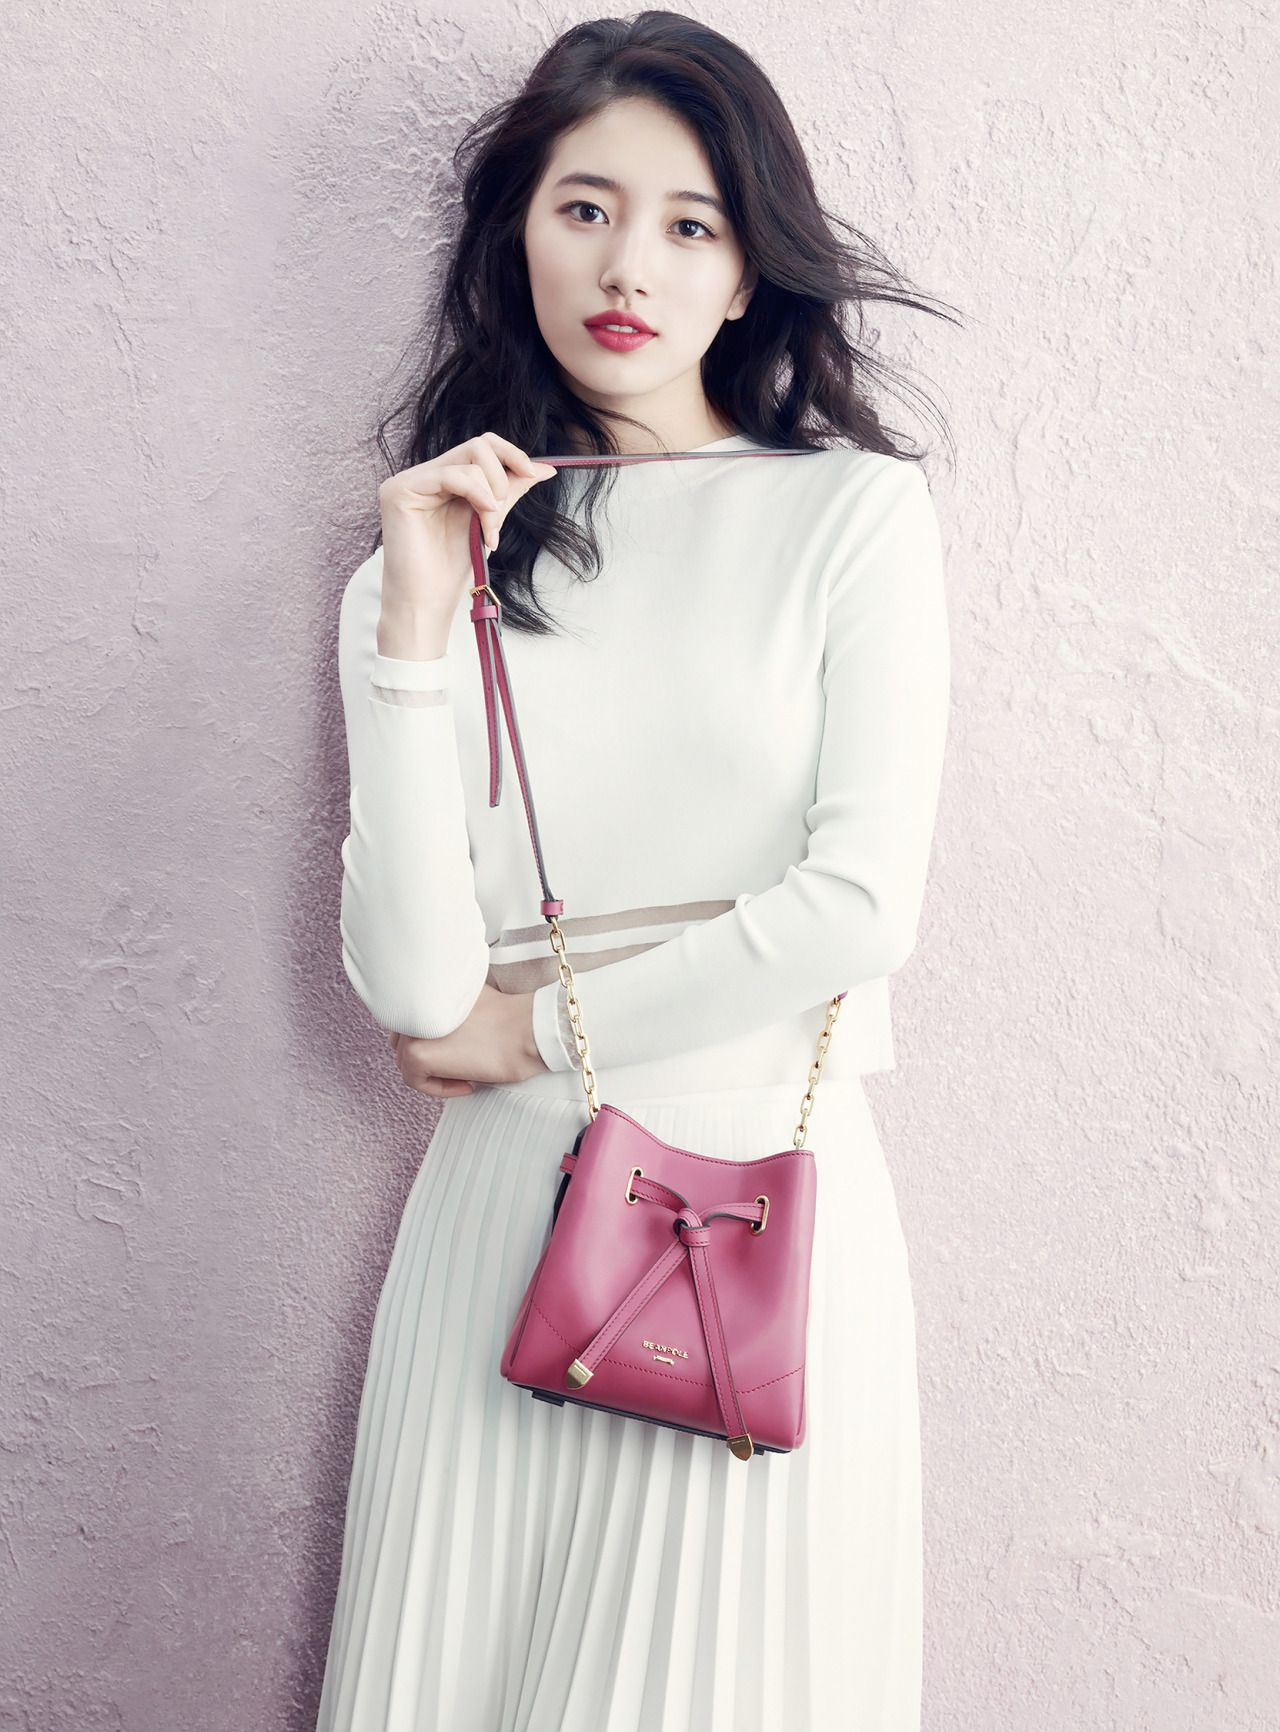 Full white + a pop of color // [CF] Miss A Suzy – Bean Pole S/S 2015